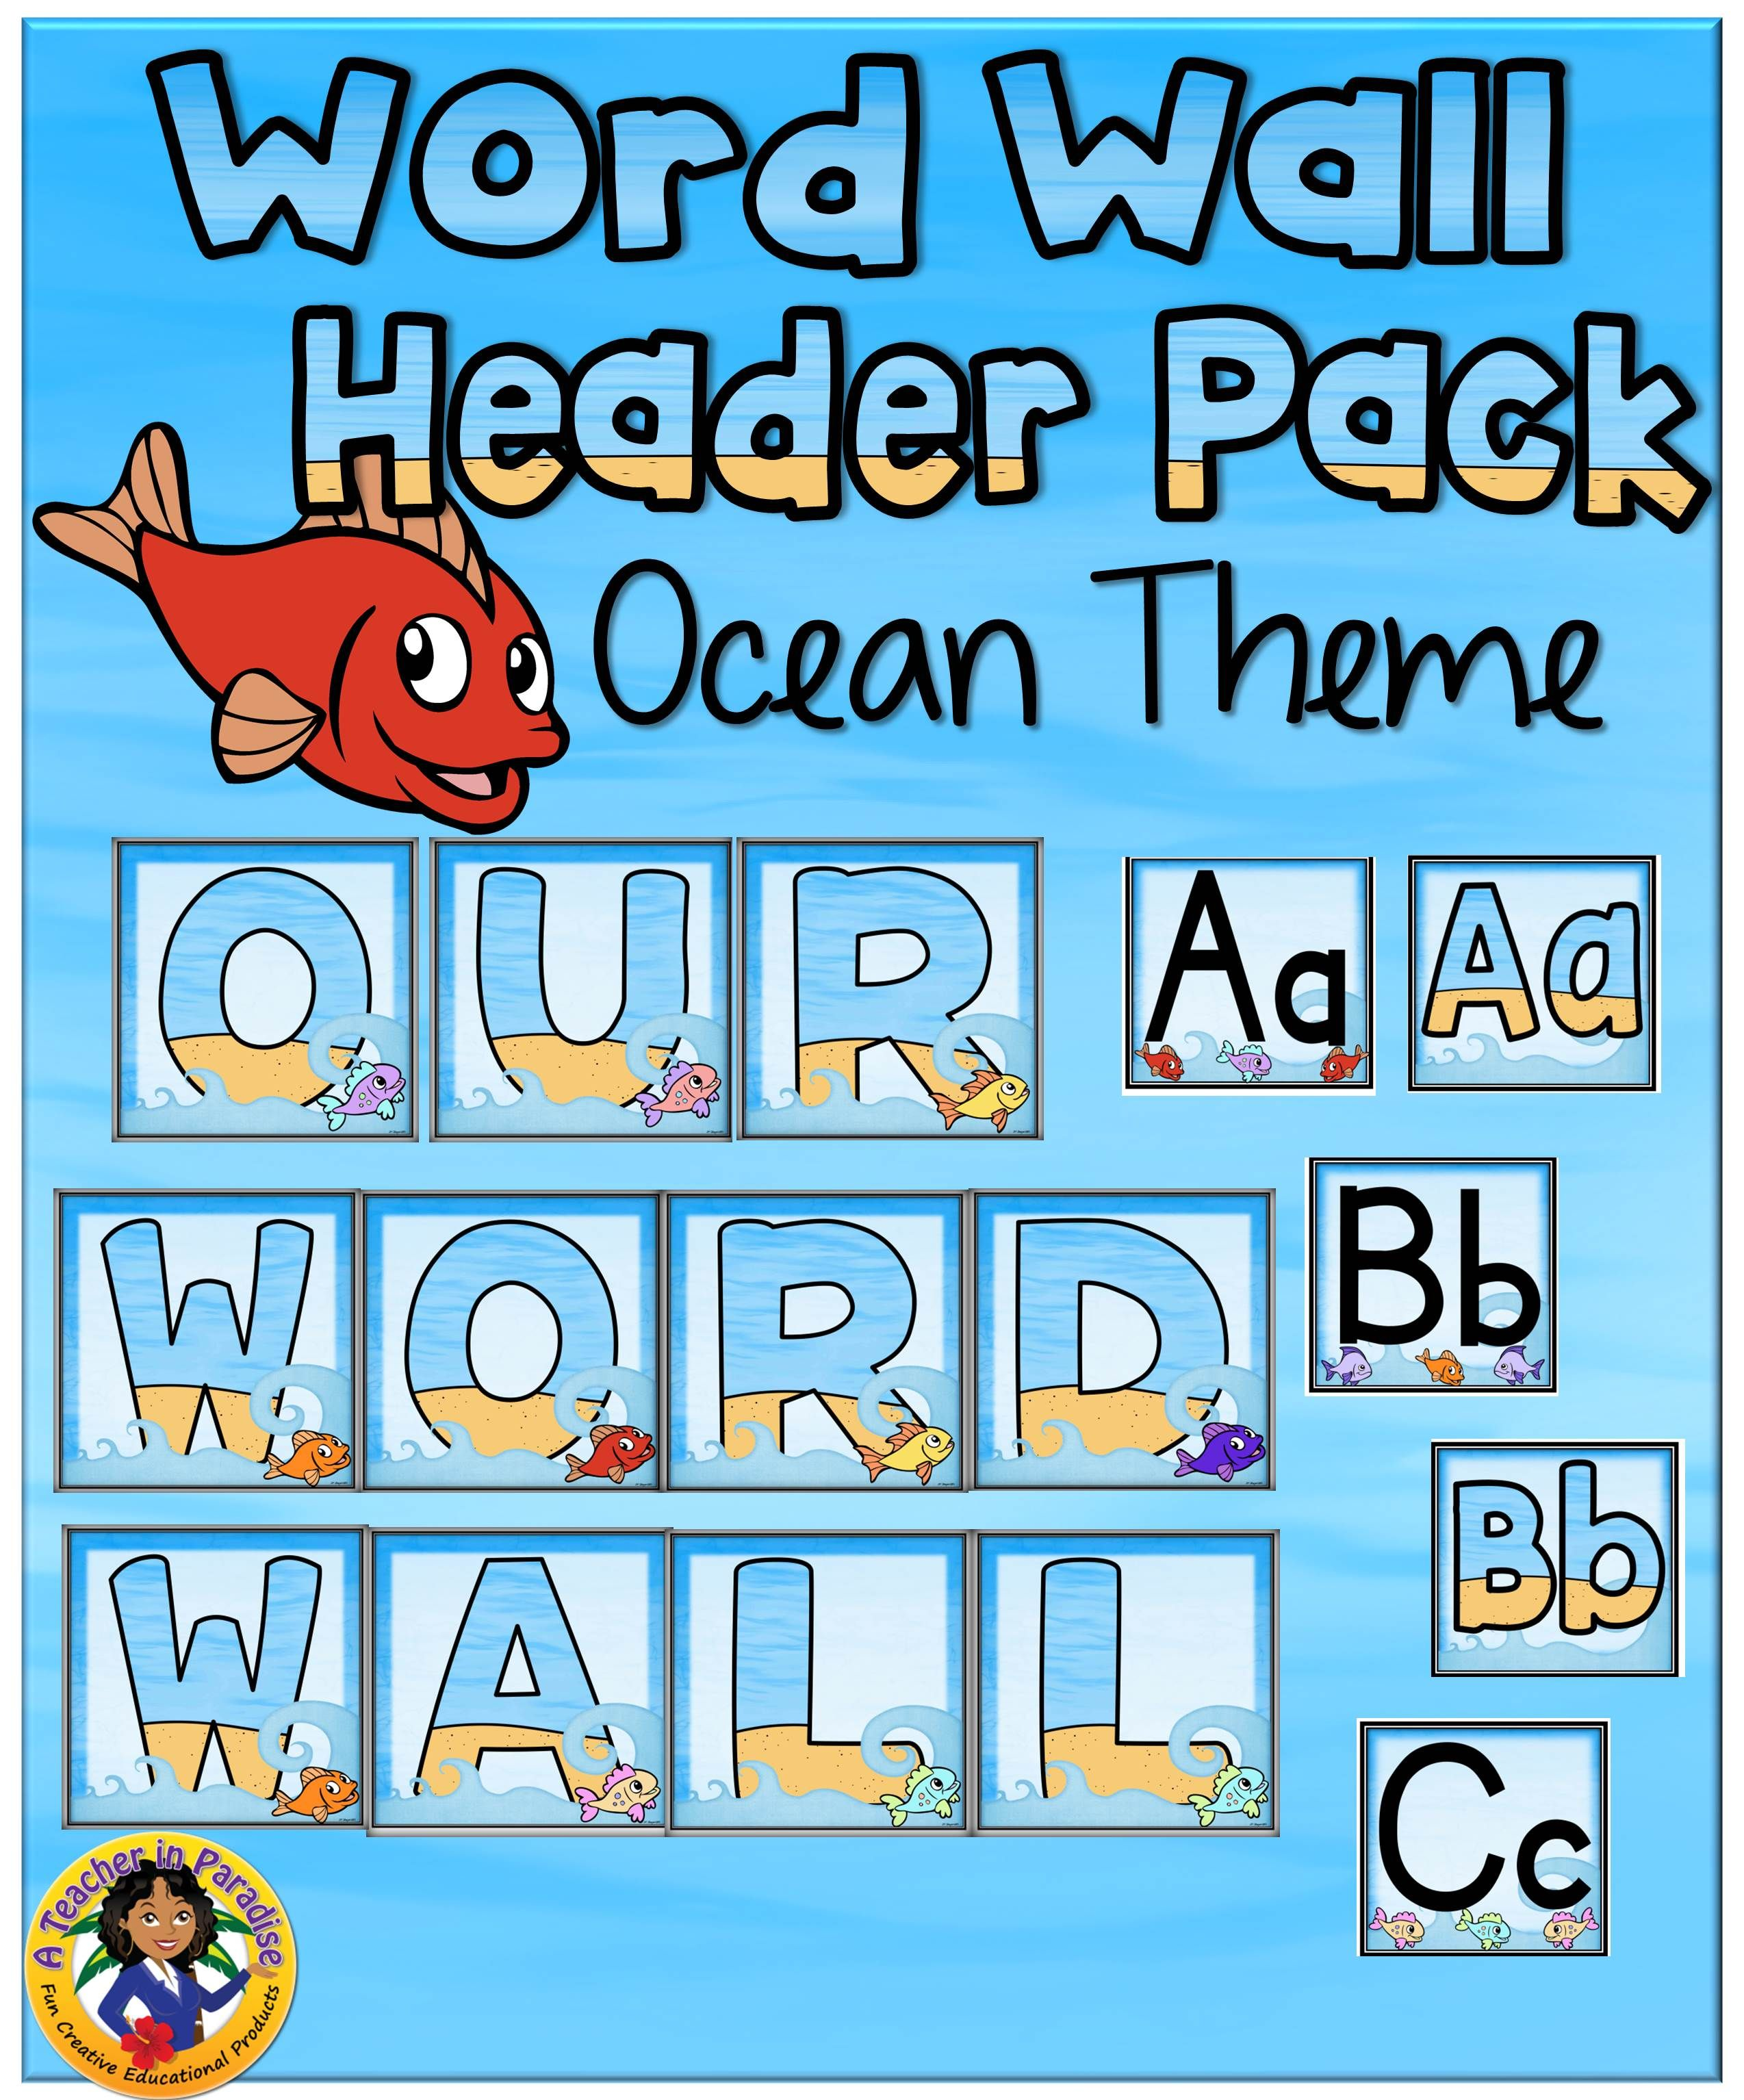 Word Wall Letters Simple Ocean Theme Word Wall Banner And Headers Set  Word Wall Letters Inspiration